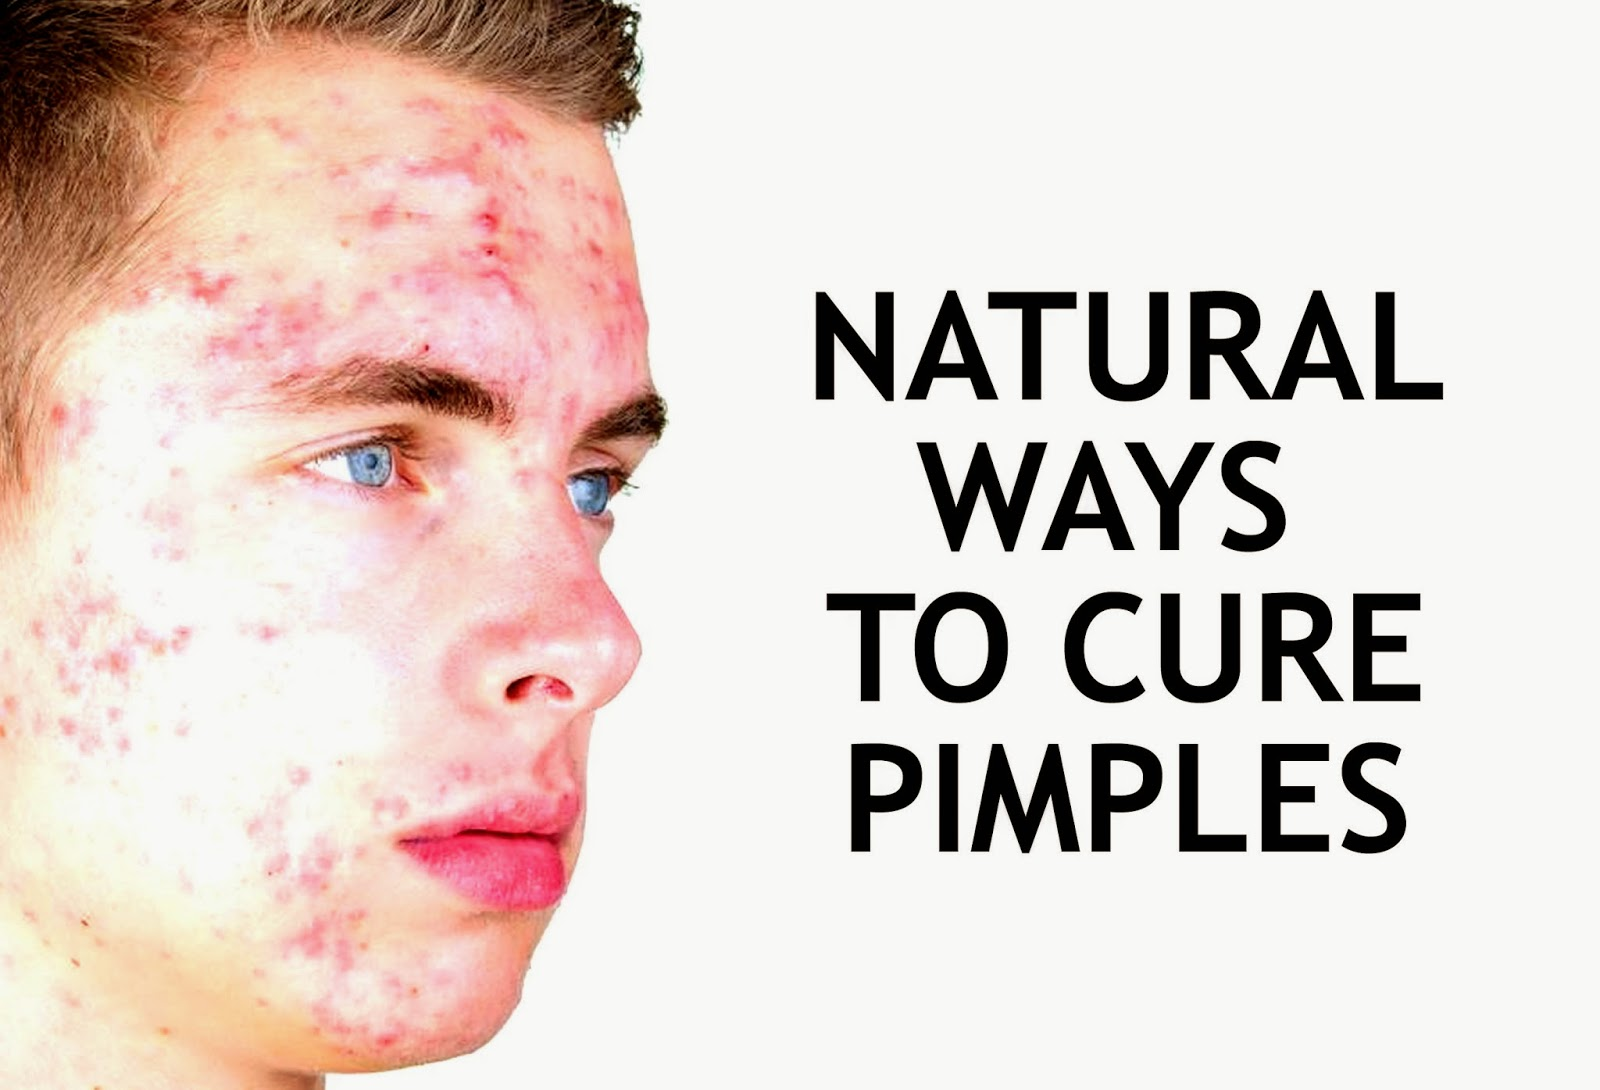 How To Reduce Pimples Naturally At Home In One Day